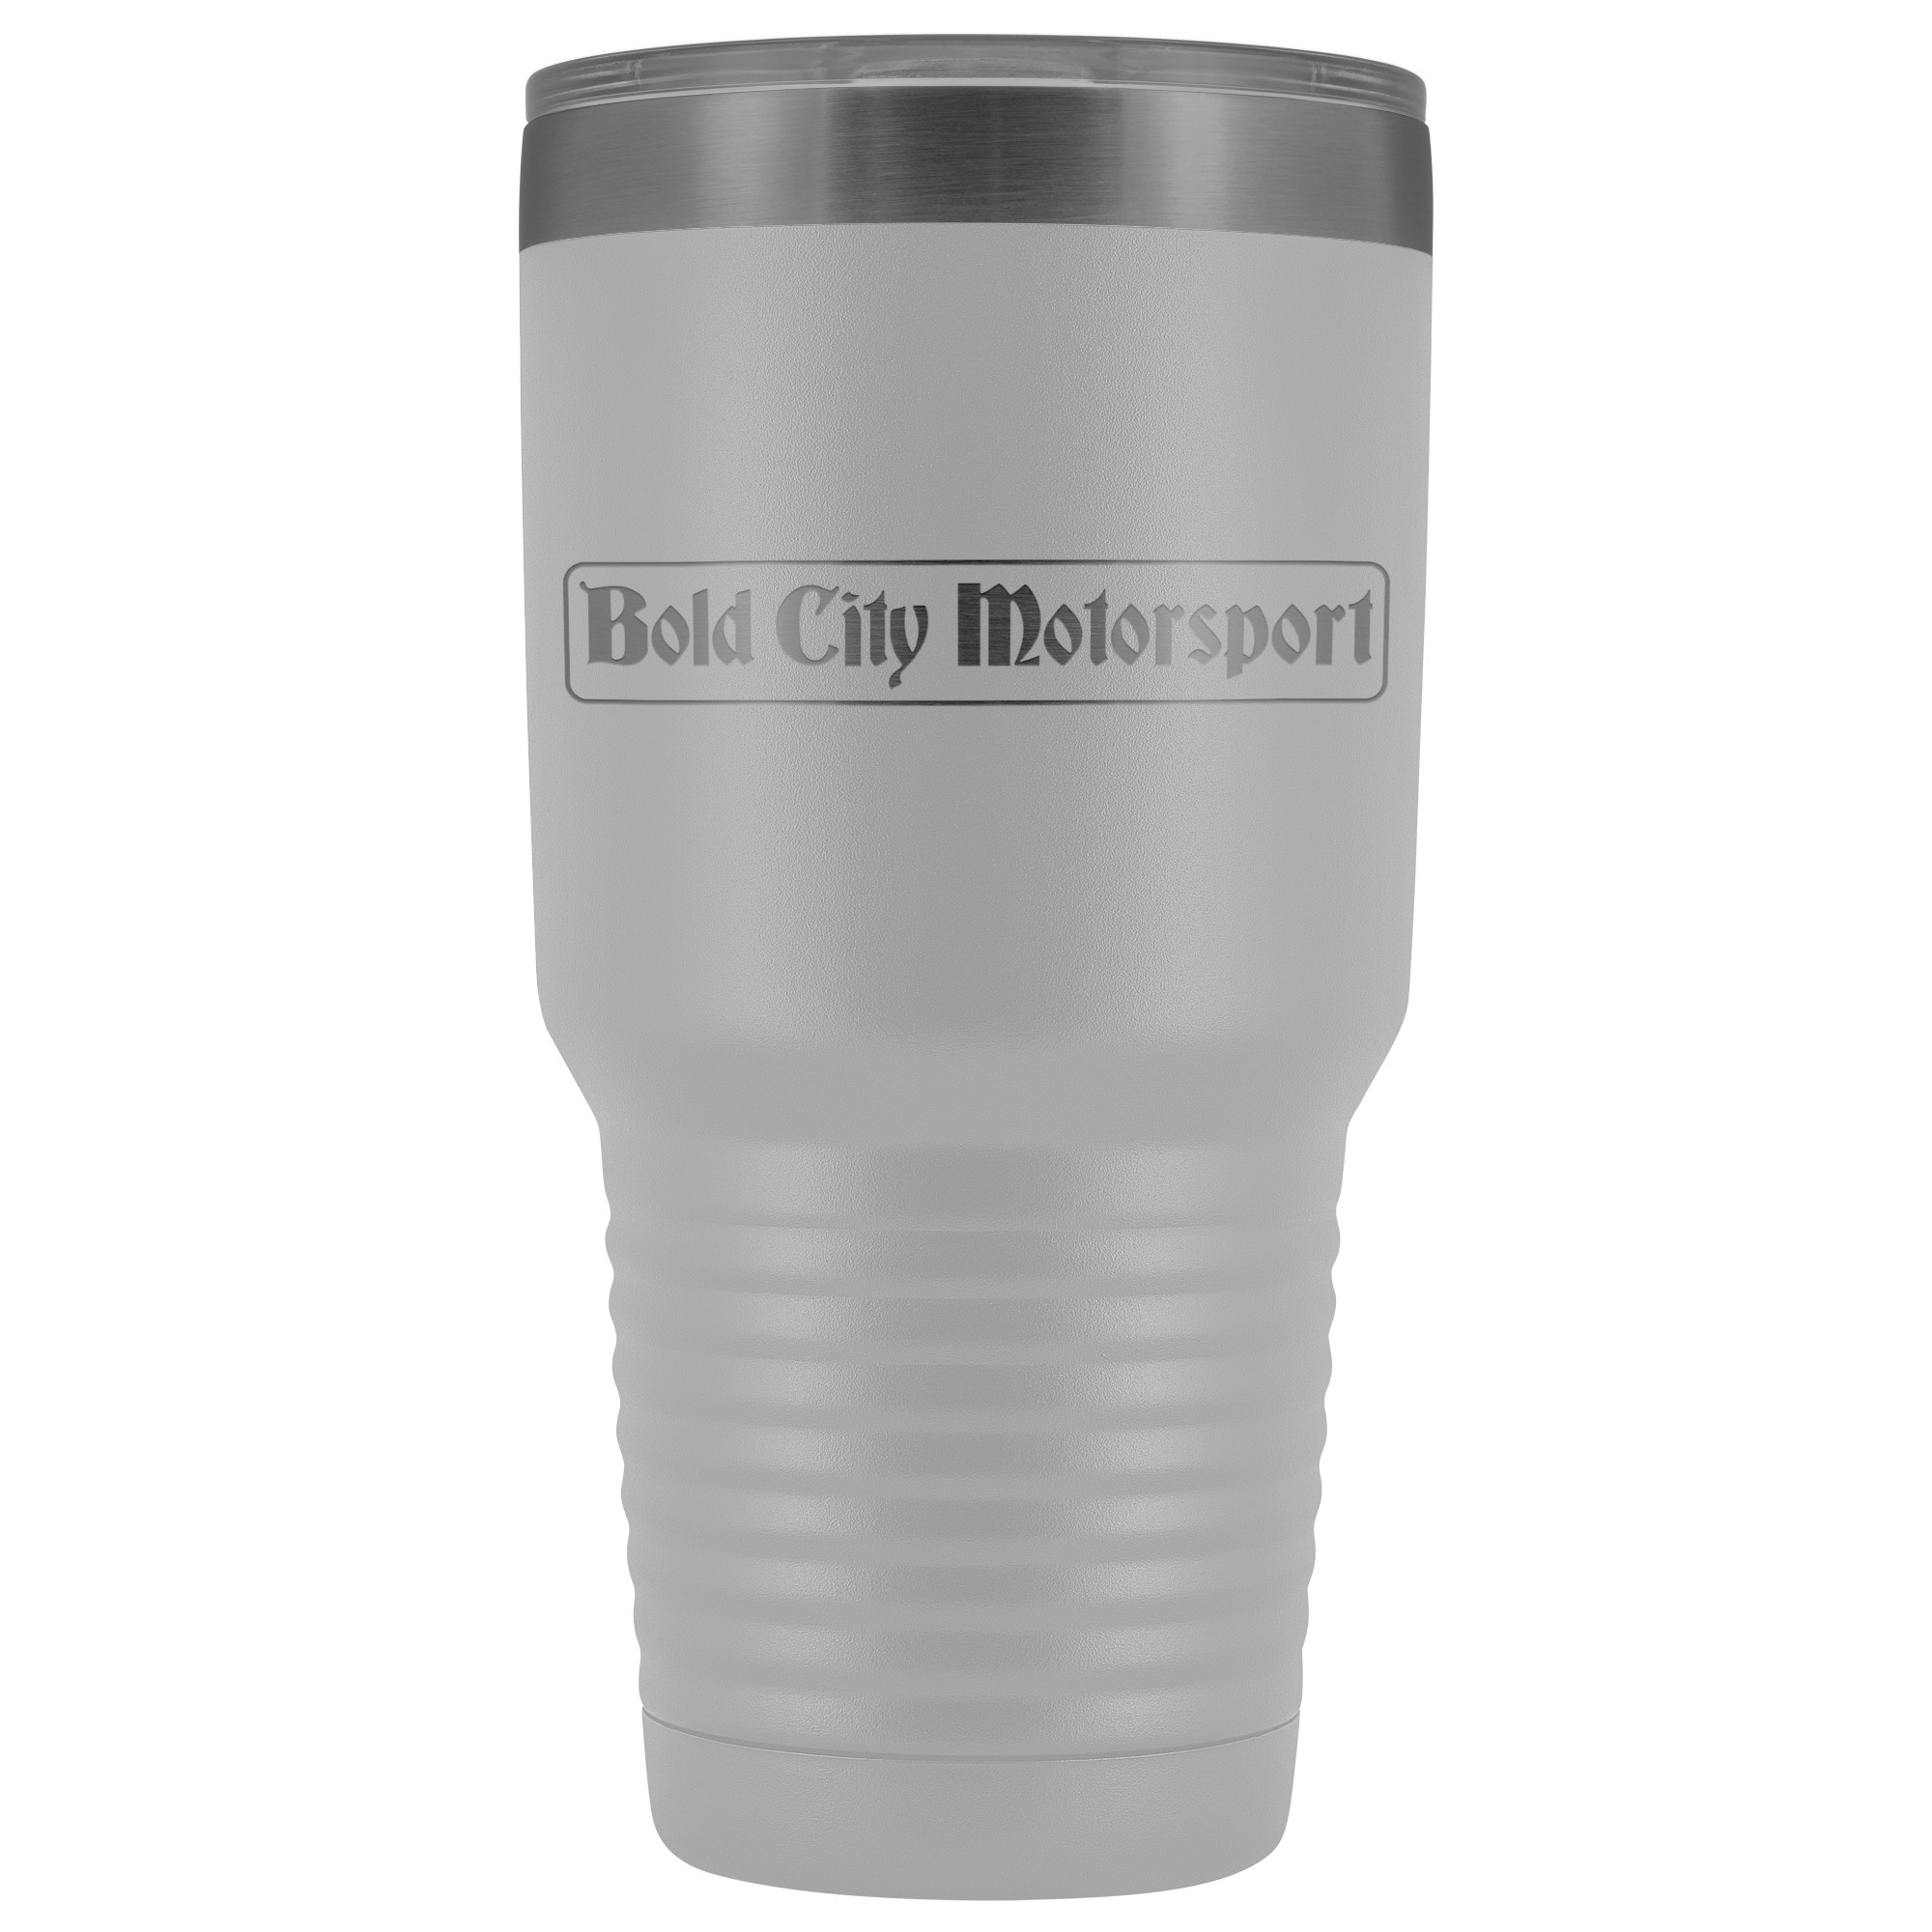 Bold City Motorsport Tumbler